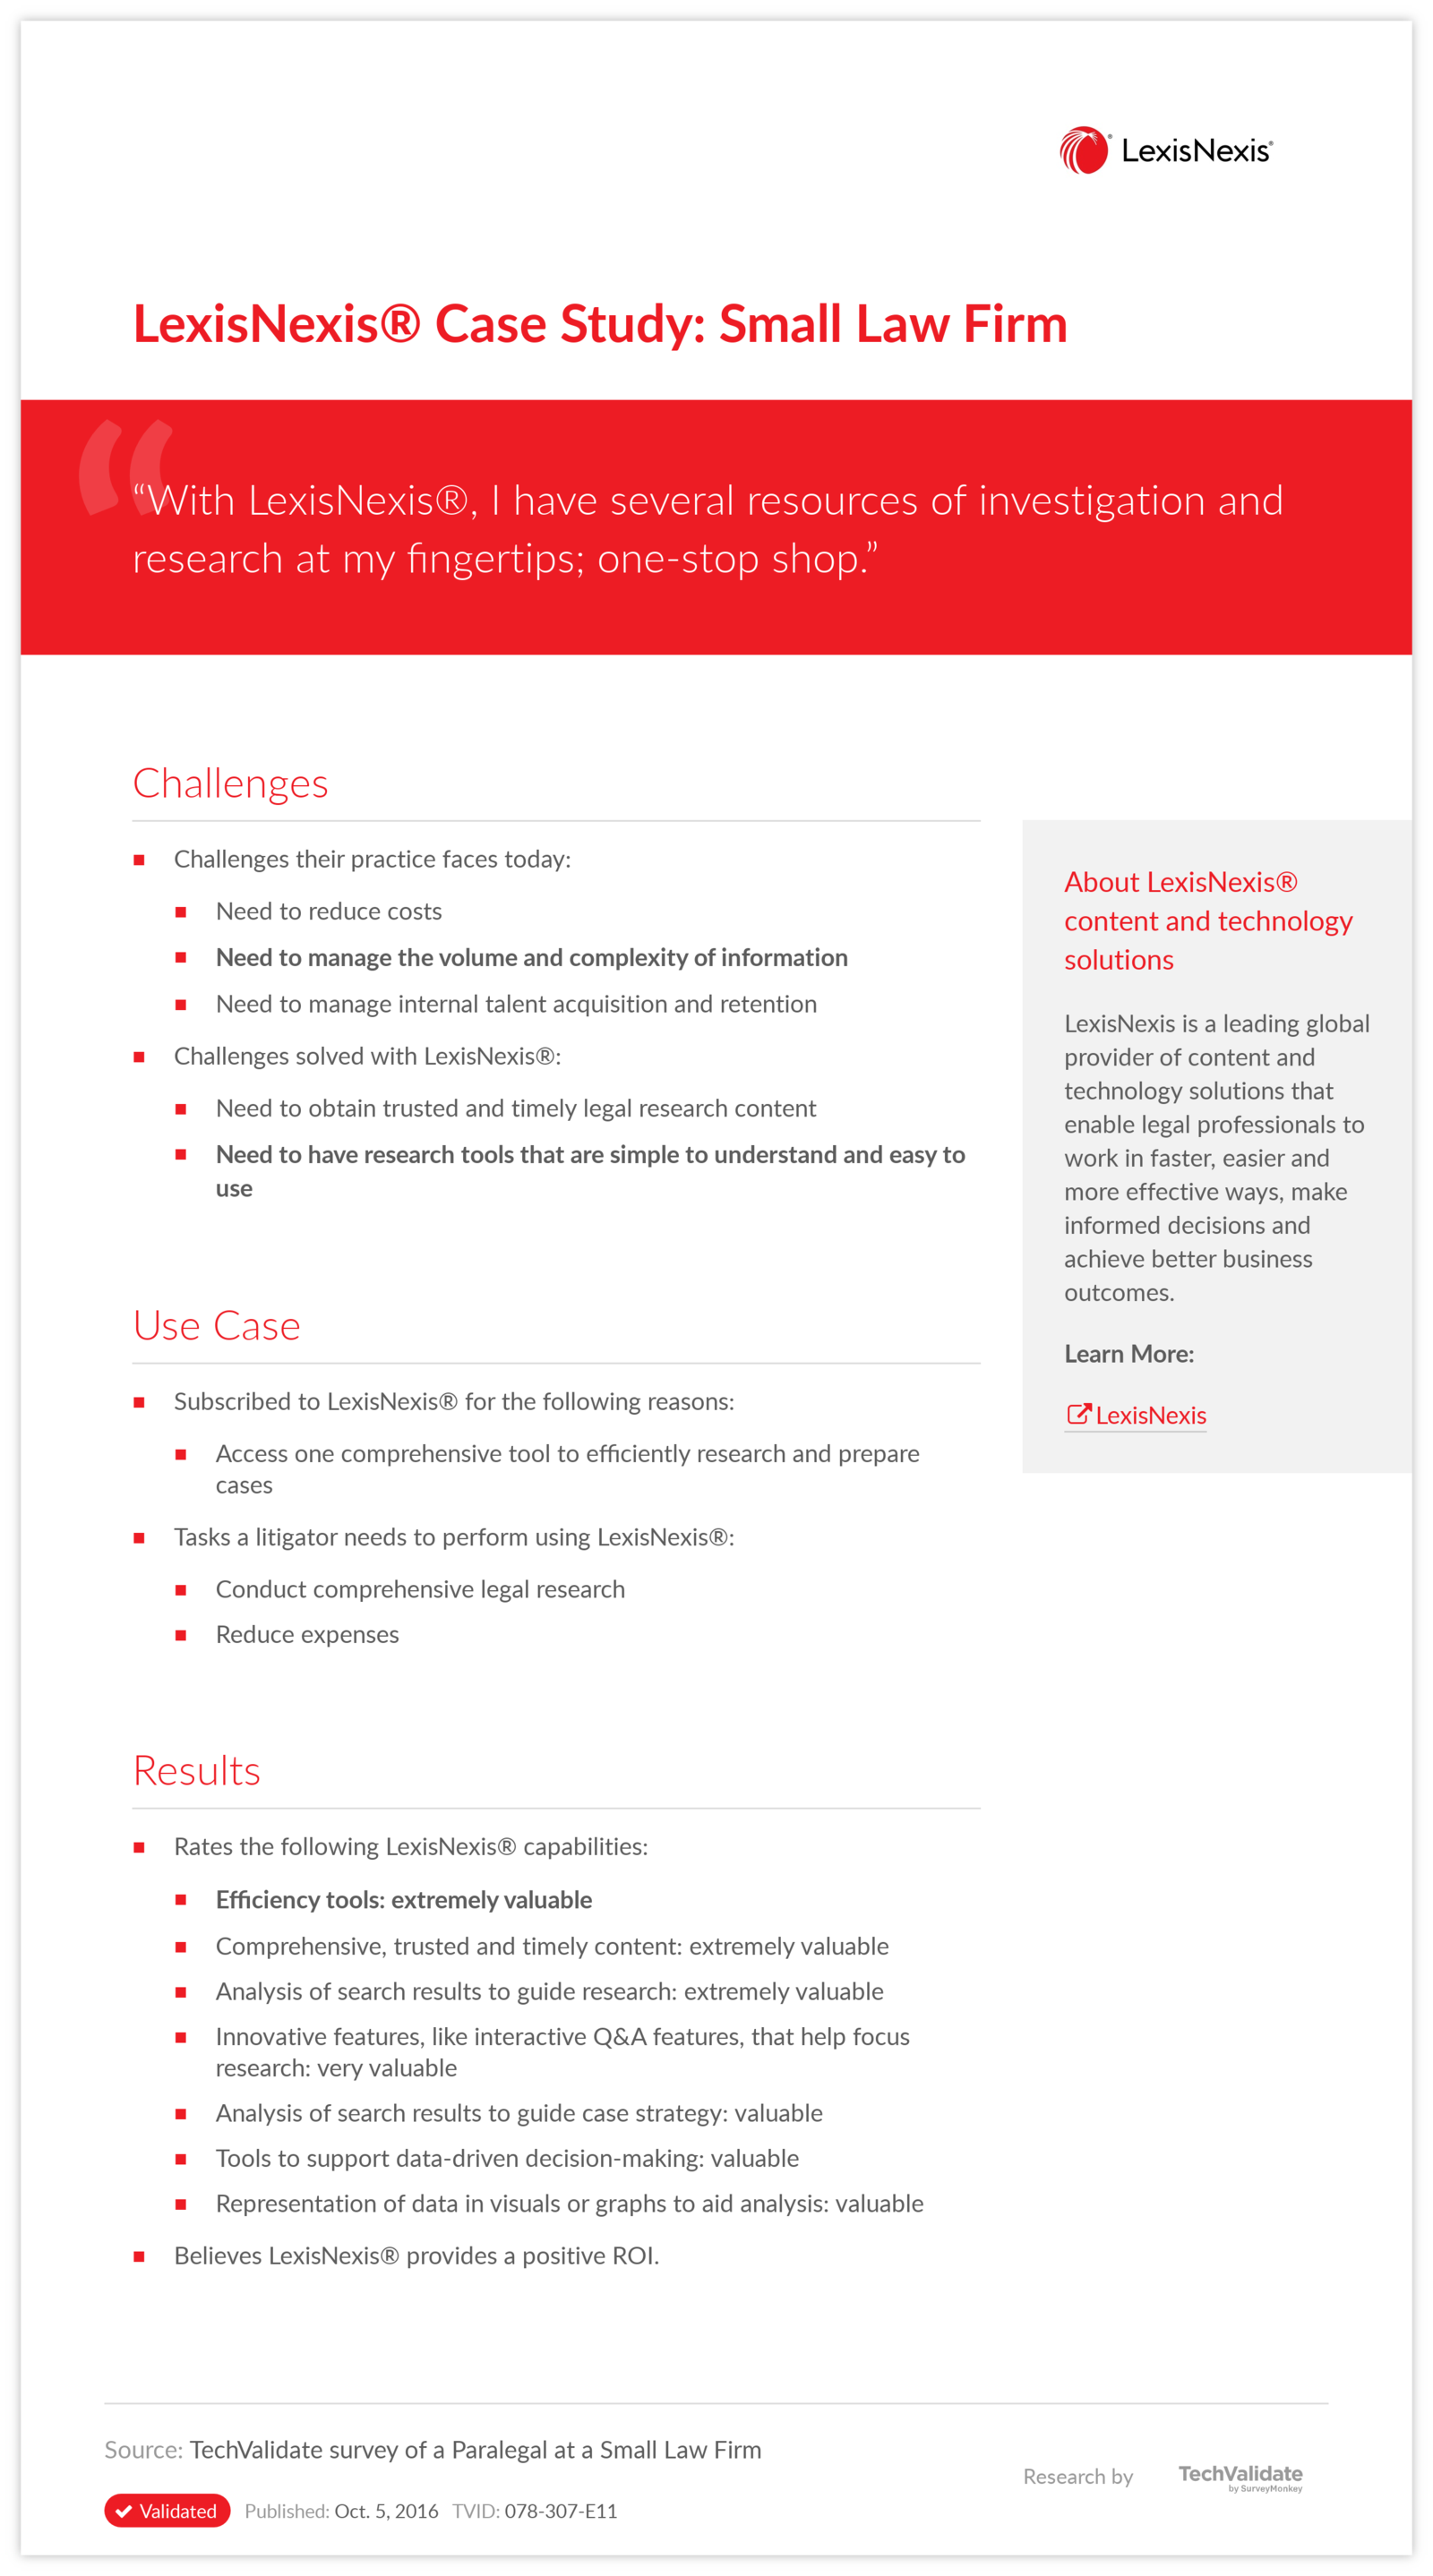 LexisNexis® Case Study: Small Law Firm